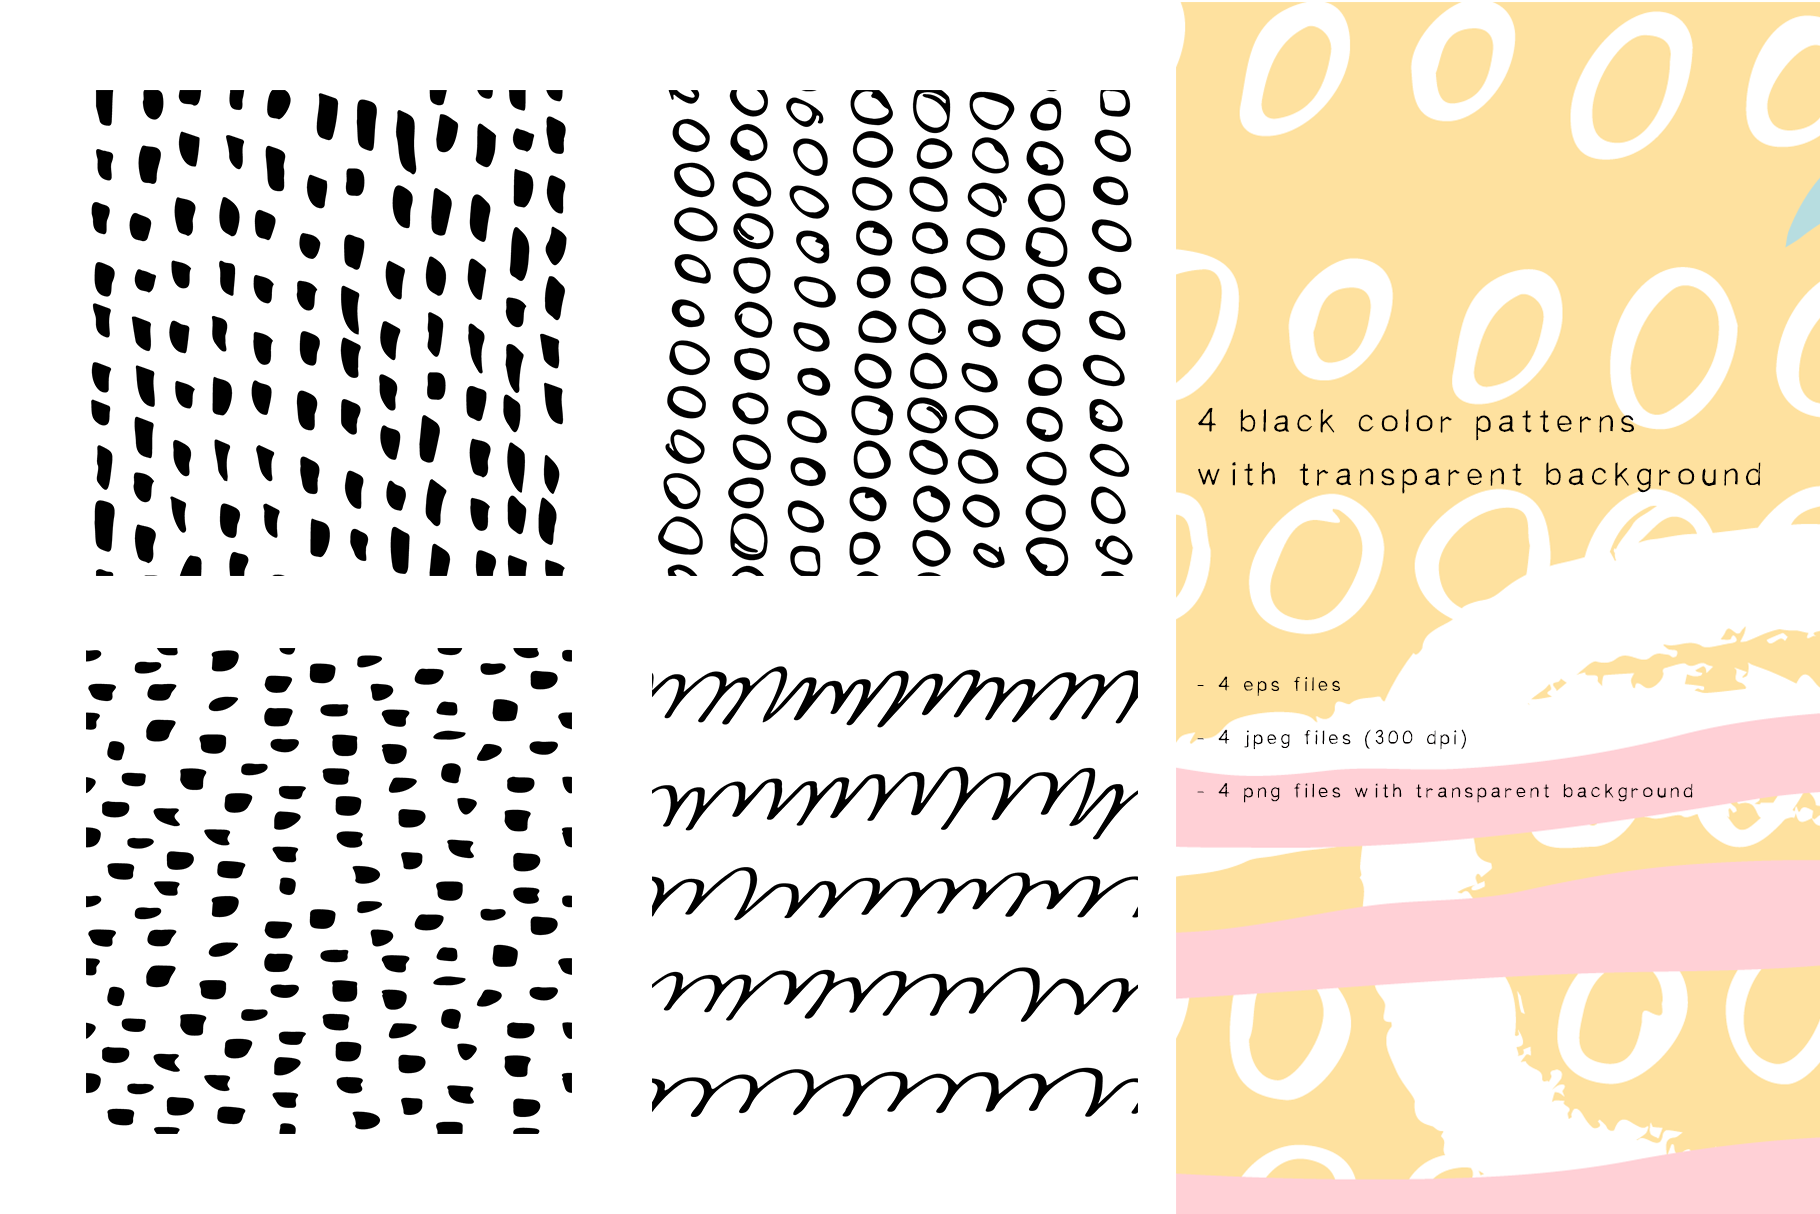 Abstract design elements. Collages & seamless patterns example image 7